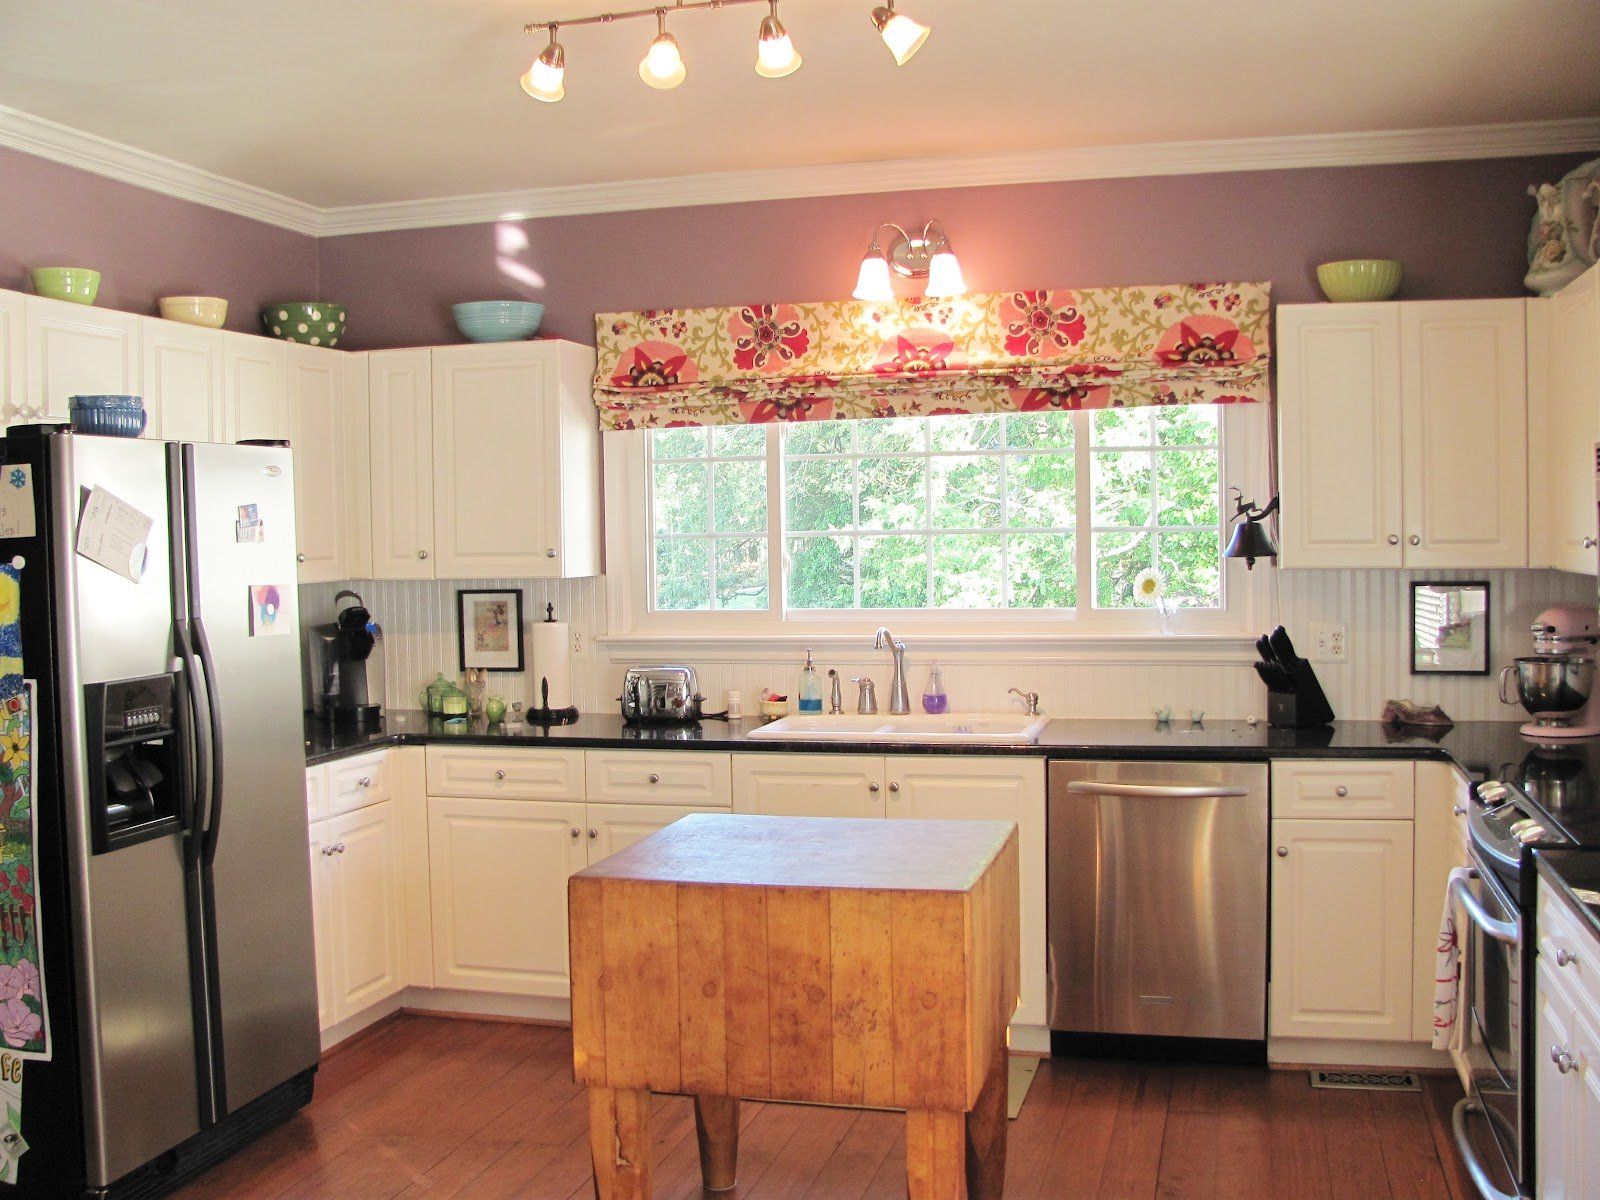 Mauve and cream kitchen with square wooden island in the middle of the room and colourful pink roman blind at the window